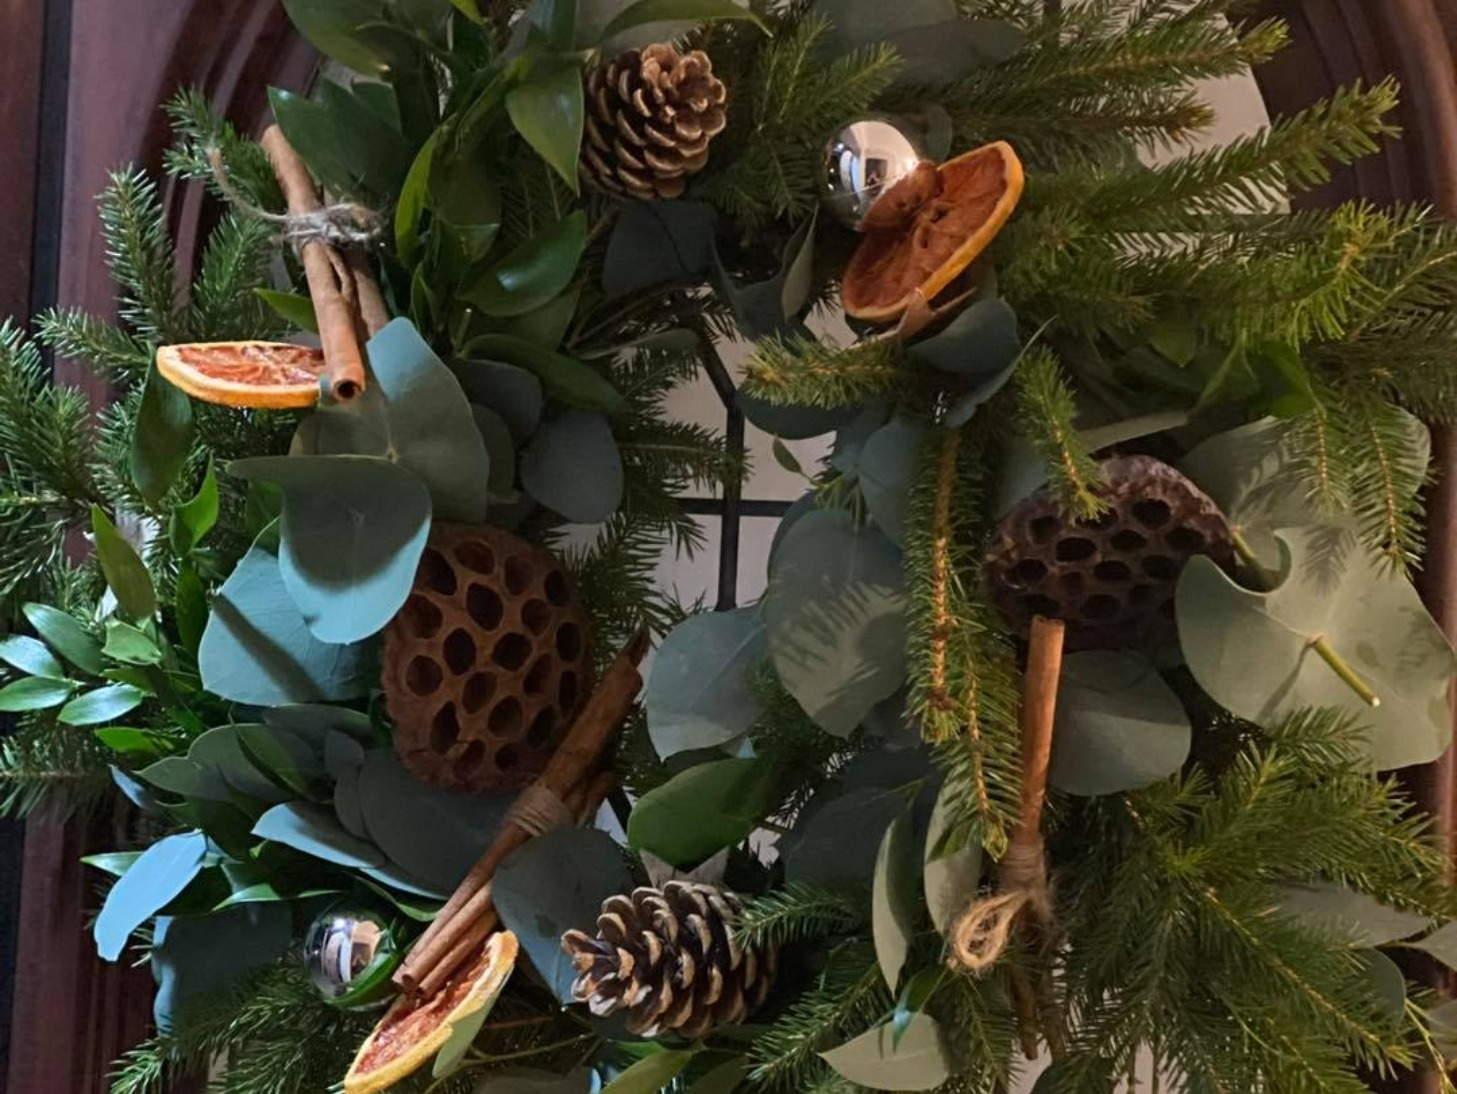 Festive Afternoon Tea and Wreath Making (Monday 13th December Workshop Room 2: 3pm-6pm) DEPOSIT